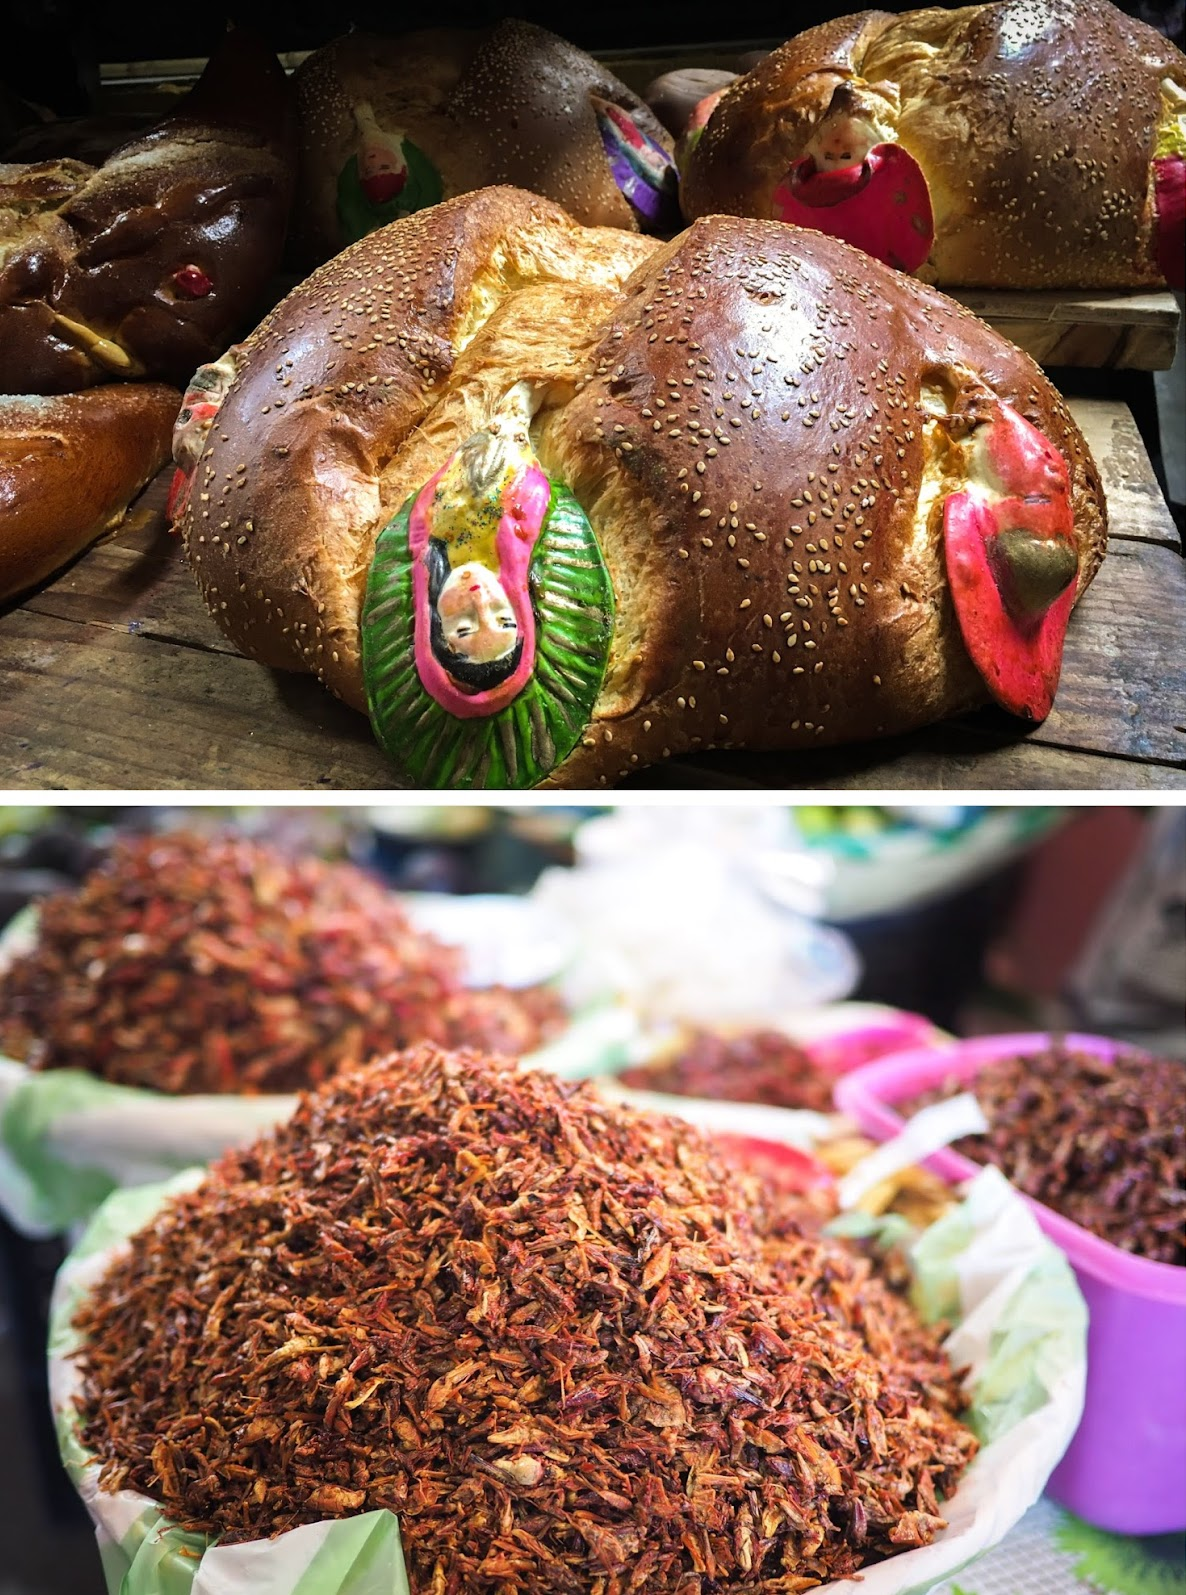 Pan de Muerto and fried crickets found at a market in Oaxaca